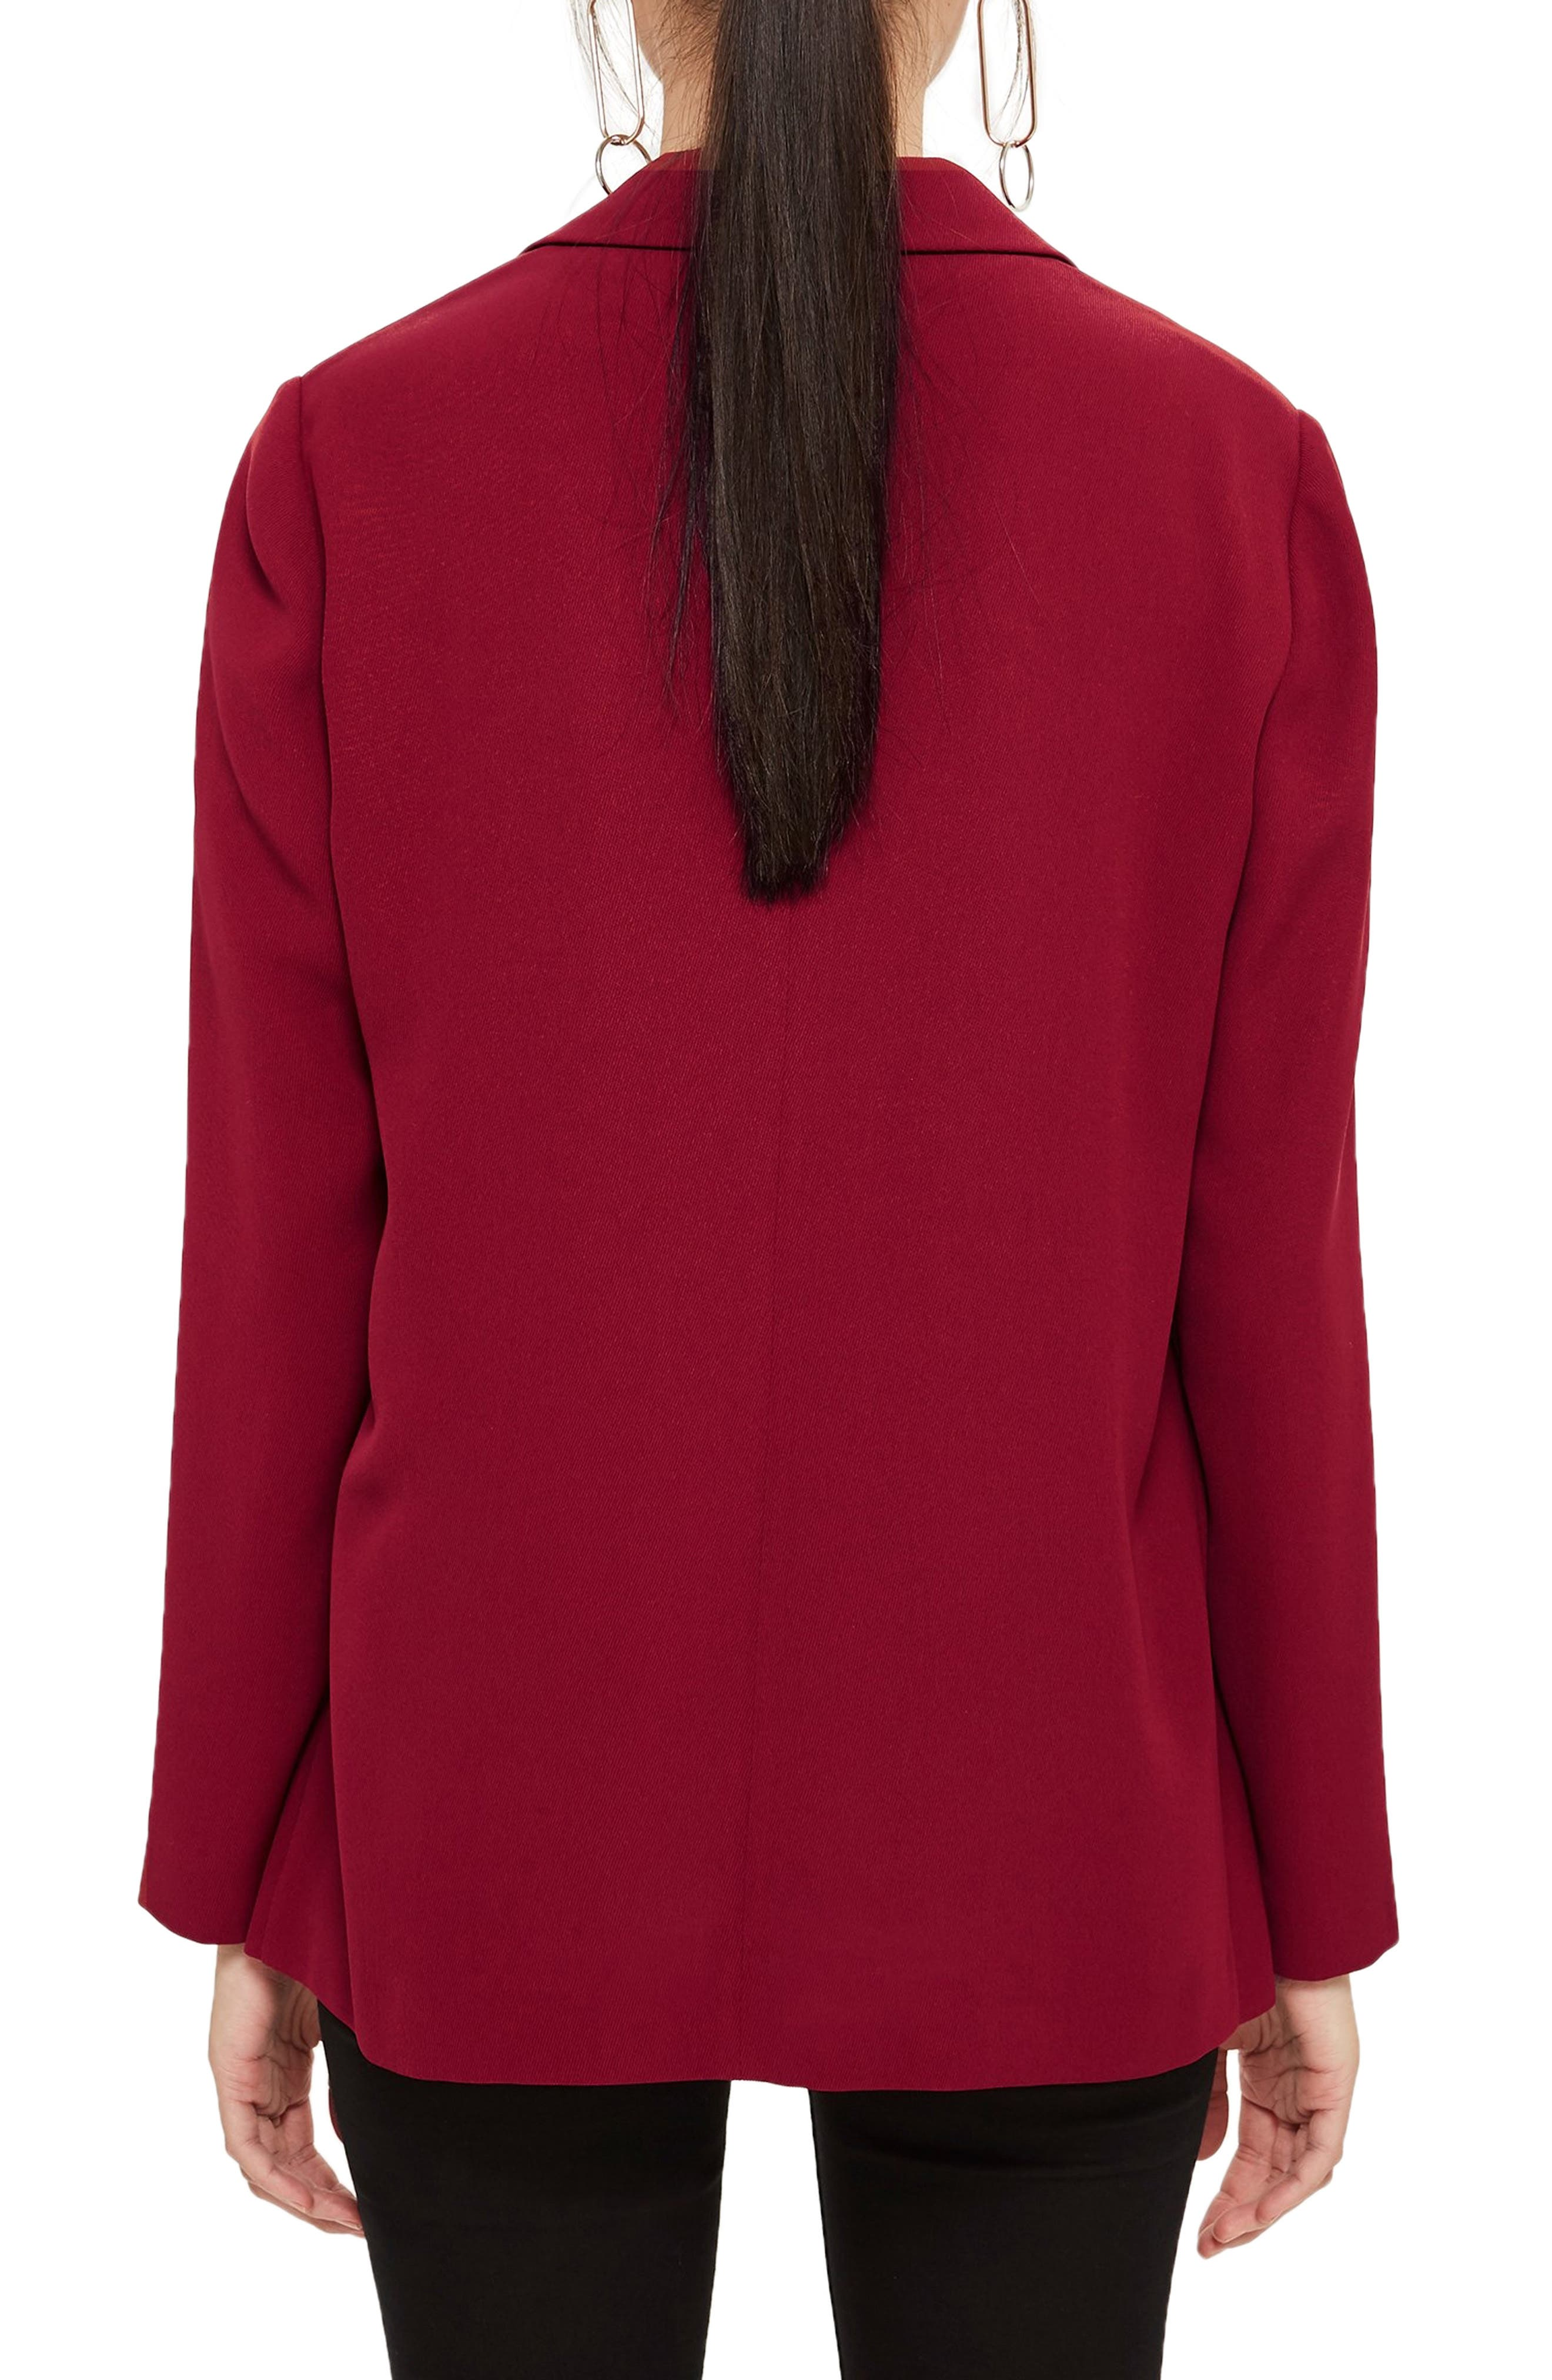 TOPSHOP, Chuck On Blazer, Alternate thumbnail 2, color, RED